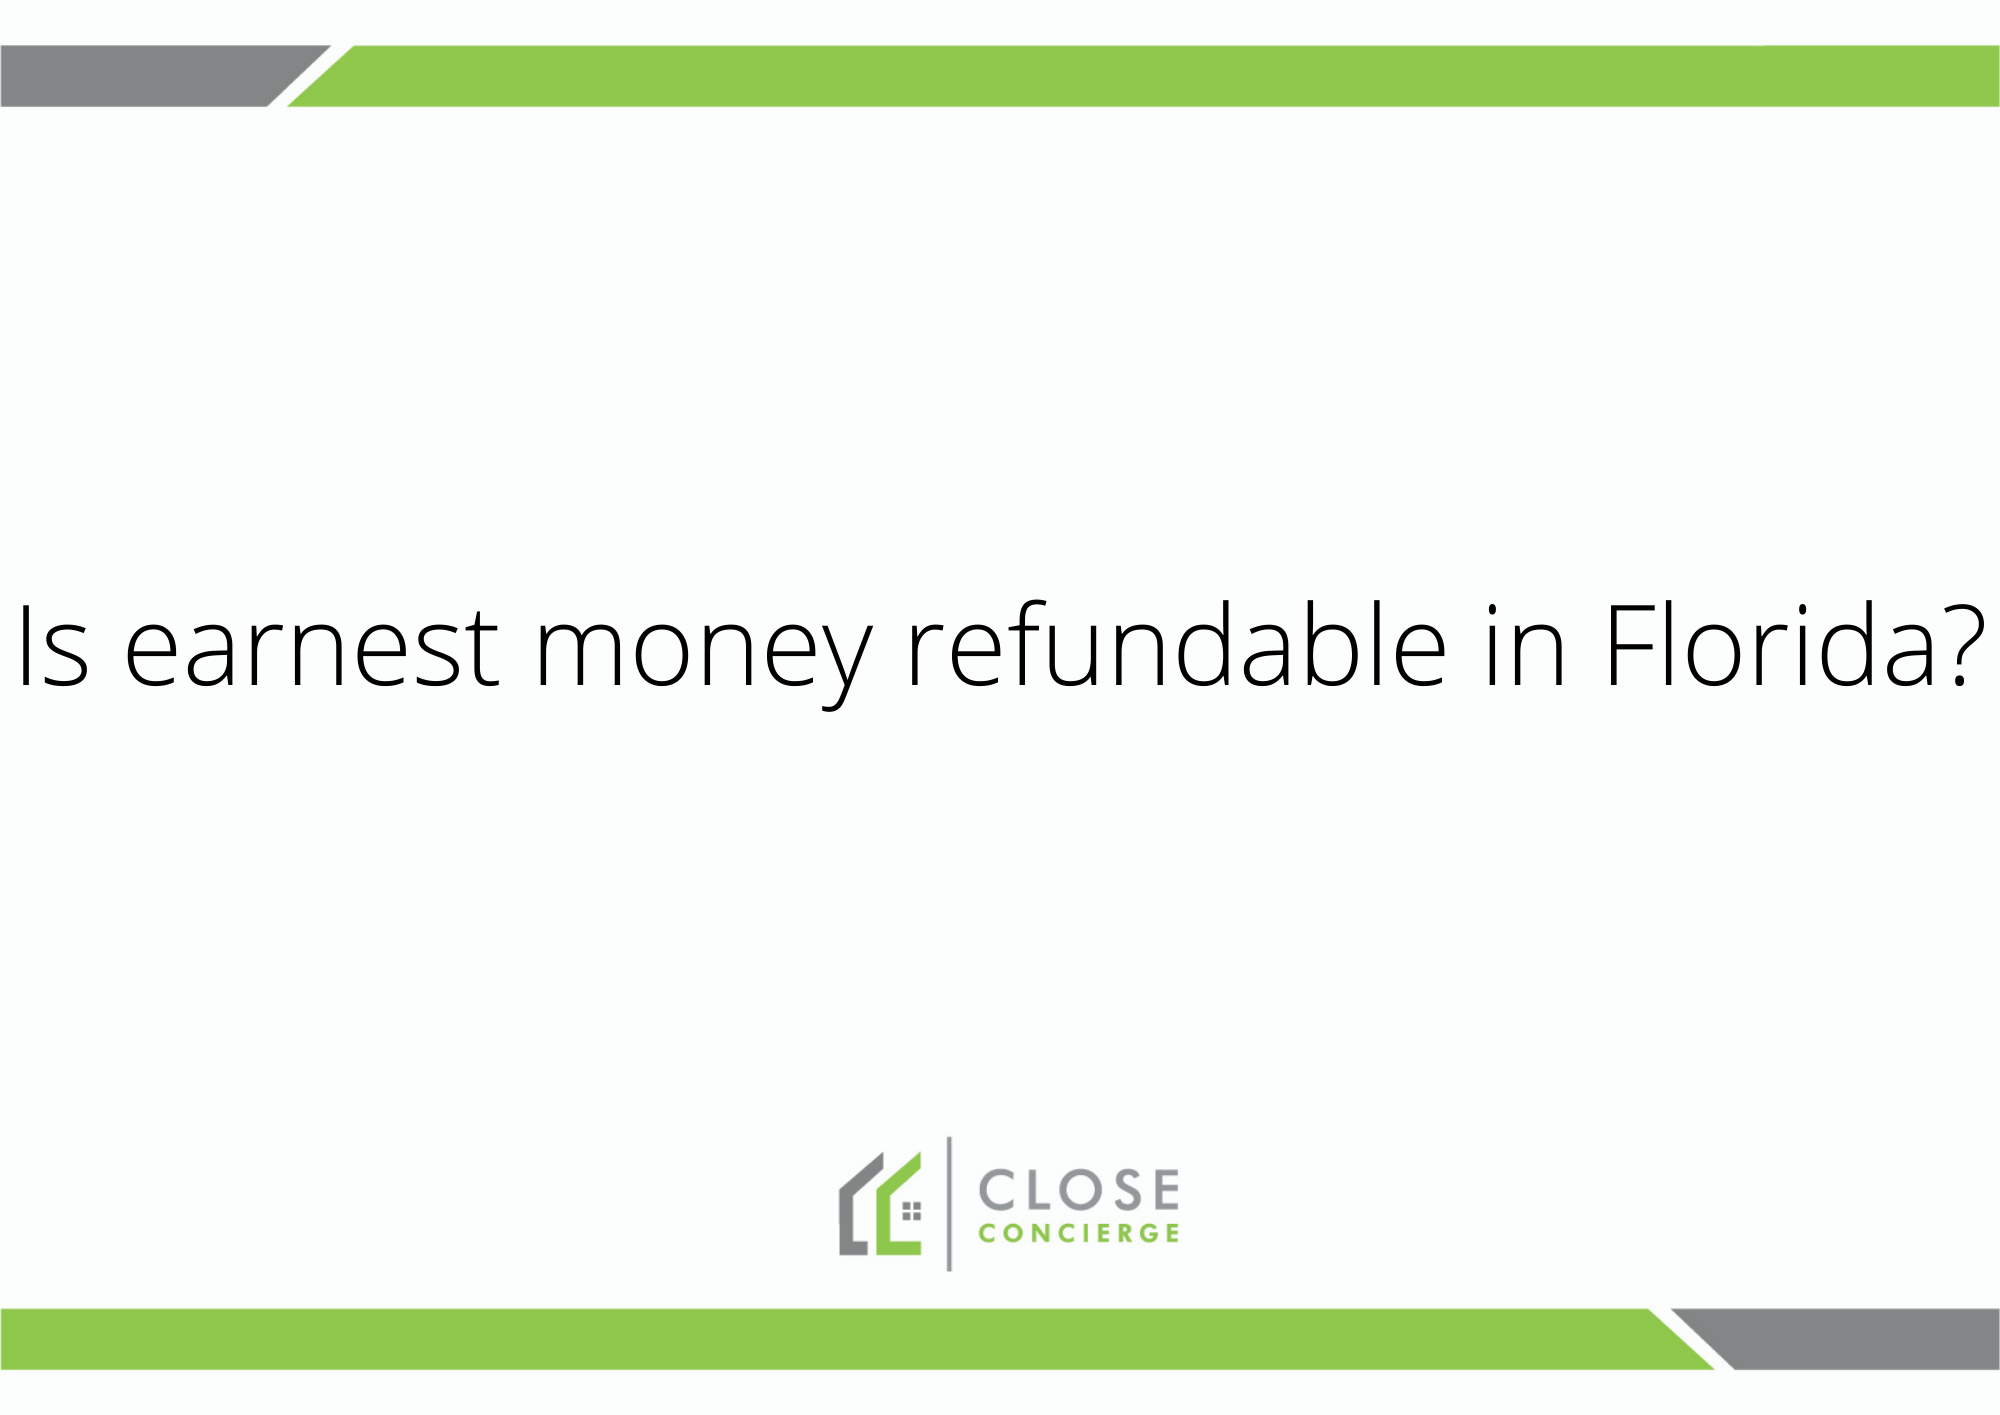 Is earnest money refundable in Florida?